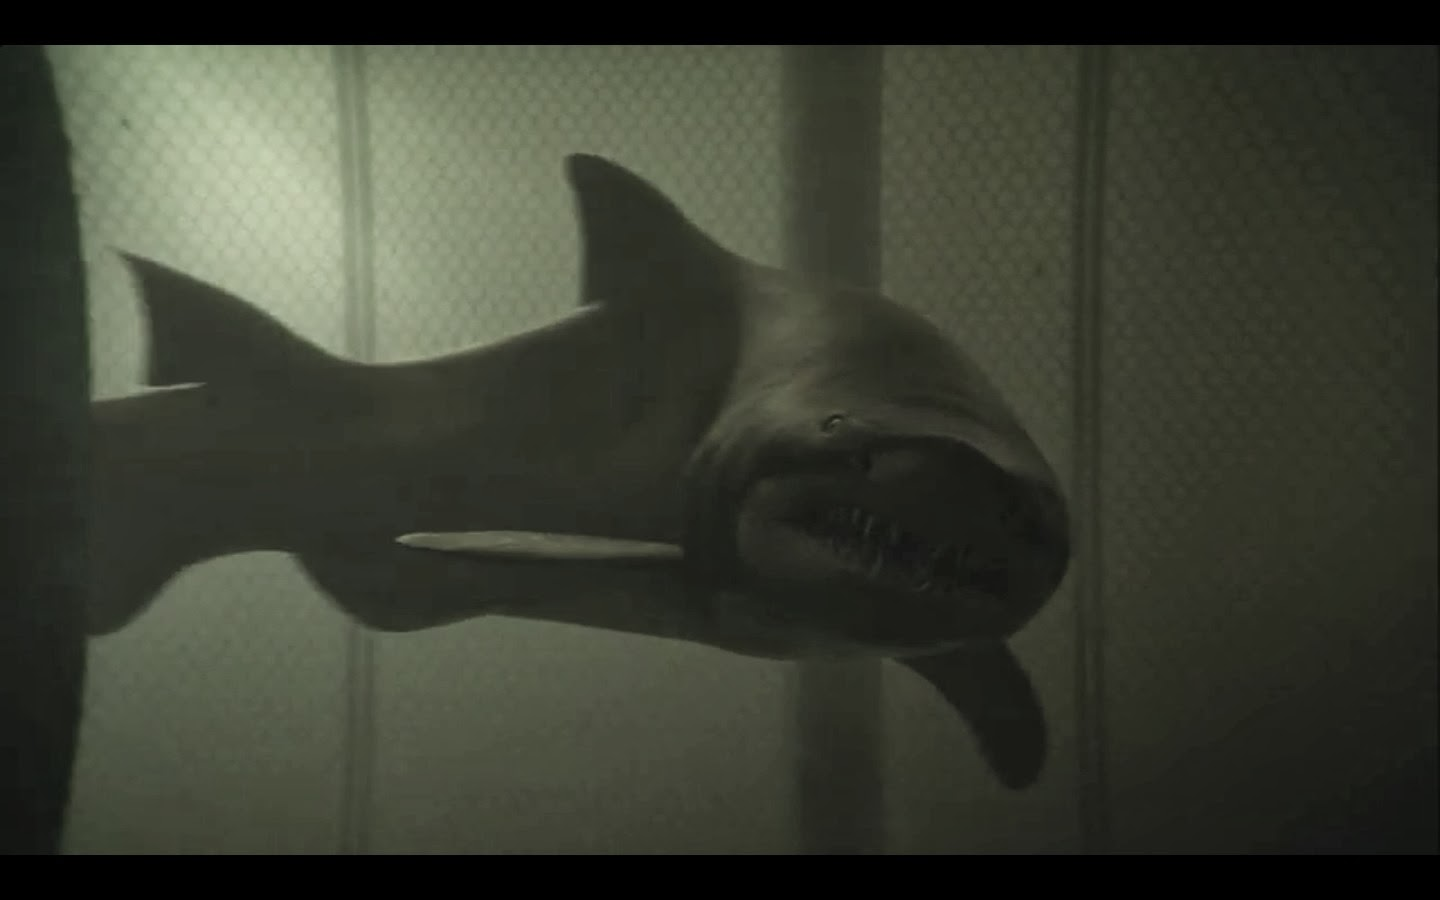 Sand tiger shark information amp pictures of sand tiger sharks - Movie Still Of Tiger Shark Getting Ready To Attack